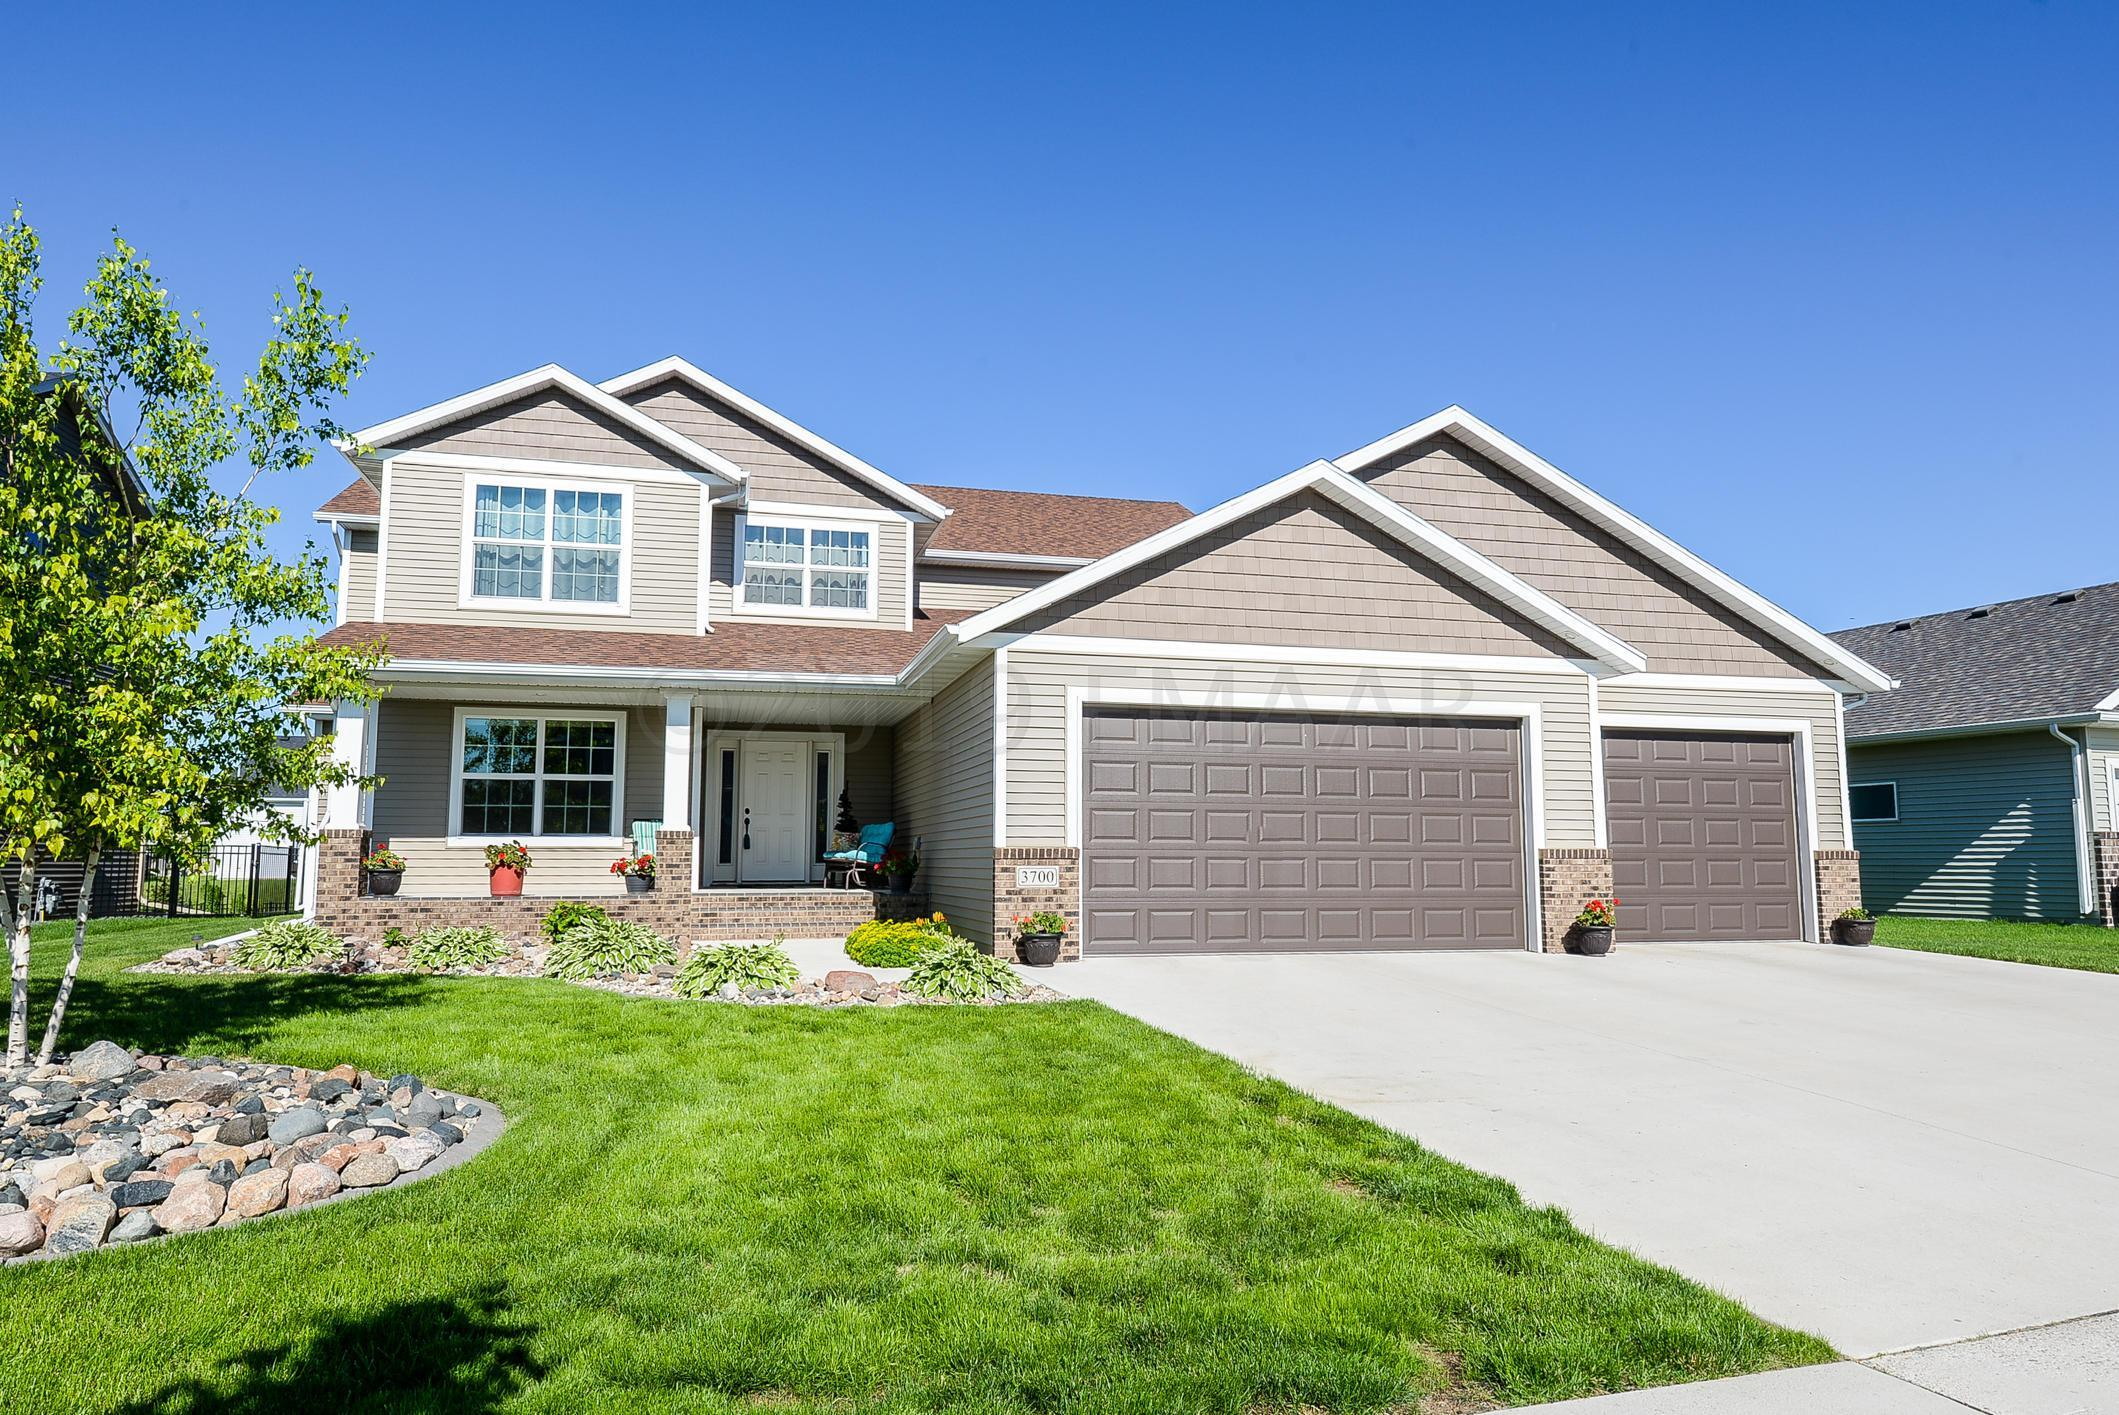 3700 Bell Boulevard E, West Fargo, ND.| MLS# 18-2426 | Scott ... Fargo House Floor Plan on the king of queens house floor plan, terra nova house floor plan, isaac bell house floor plan, last man standing house floor plan, blue bloods house floor plan, two and a half men house floor plan, the fosters house floor plan, bates motel house floor plan, raising hope house floor plan, san francisco house floor plan, ghost whisperer house floor plan, keeping up appearances house floor plan, fairbanks house floor plan, modern family house floor plan, greek house floor plan, being human house floor plan, north by northwest house floor plan, something's gotta give house floor plan, family matters house floor plan, the sopranos house floor plan,